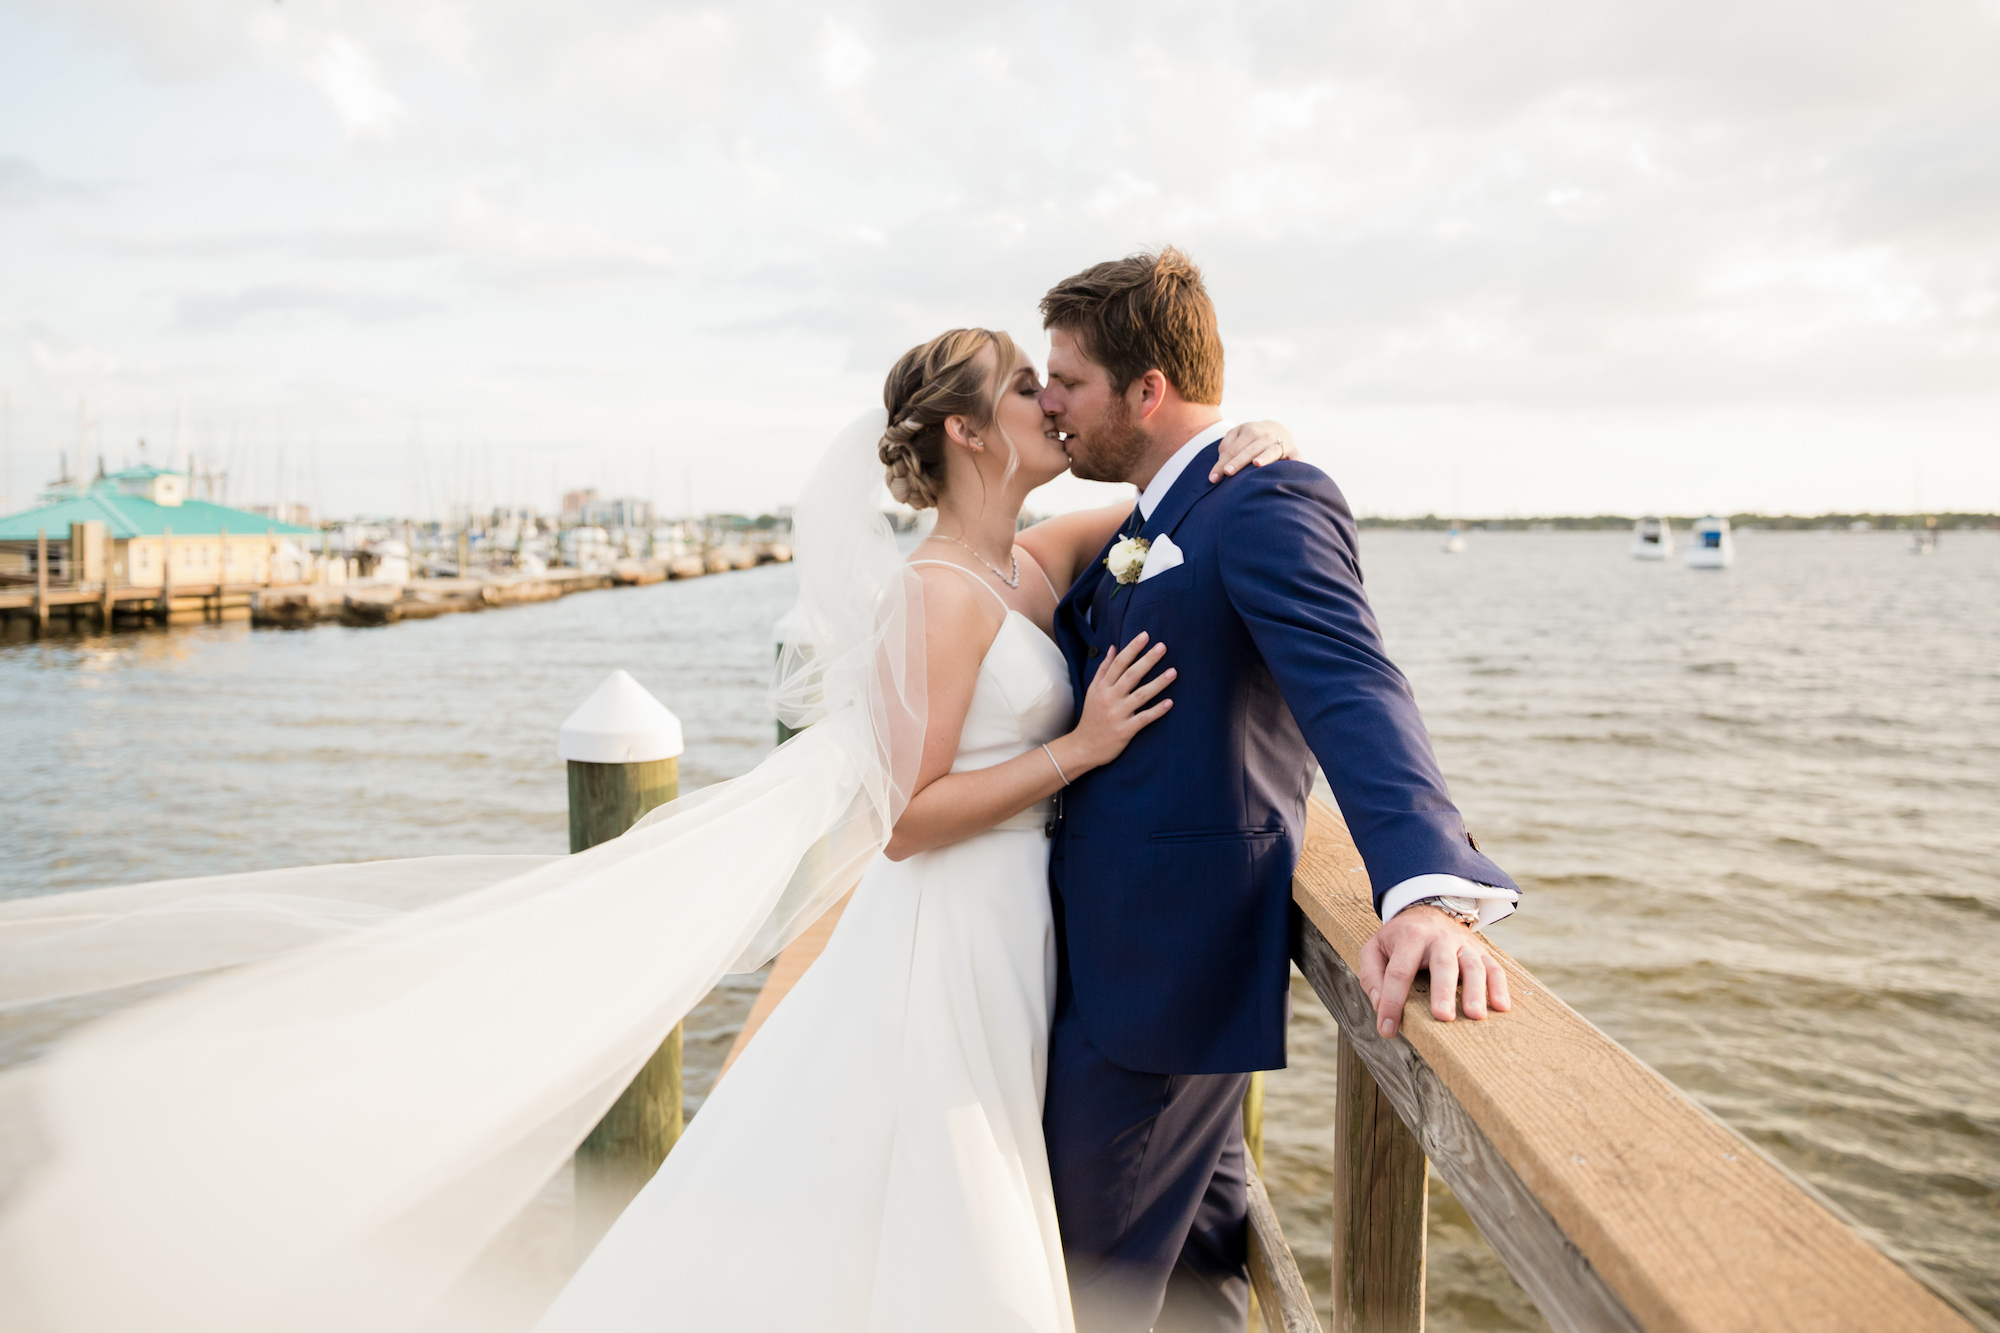 Classic Romantic Waterfront Wedding Portrait with Bride's Veil Blowing in the Wind